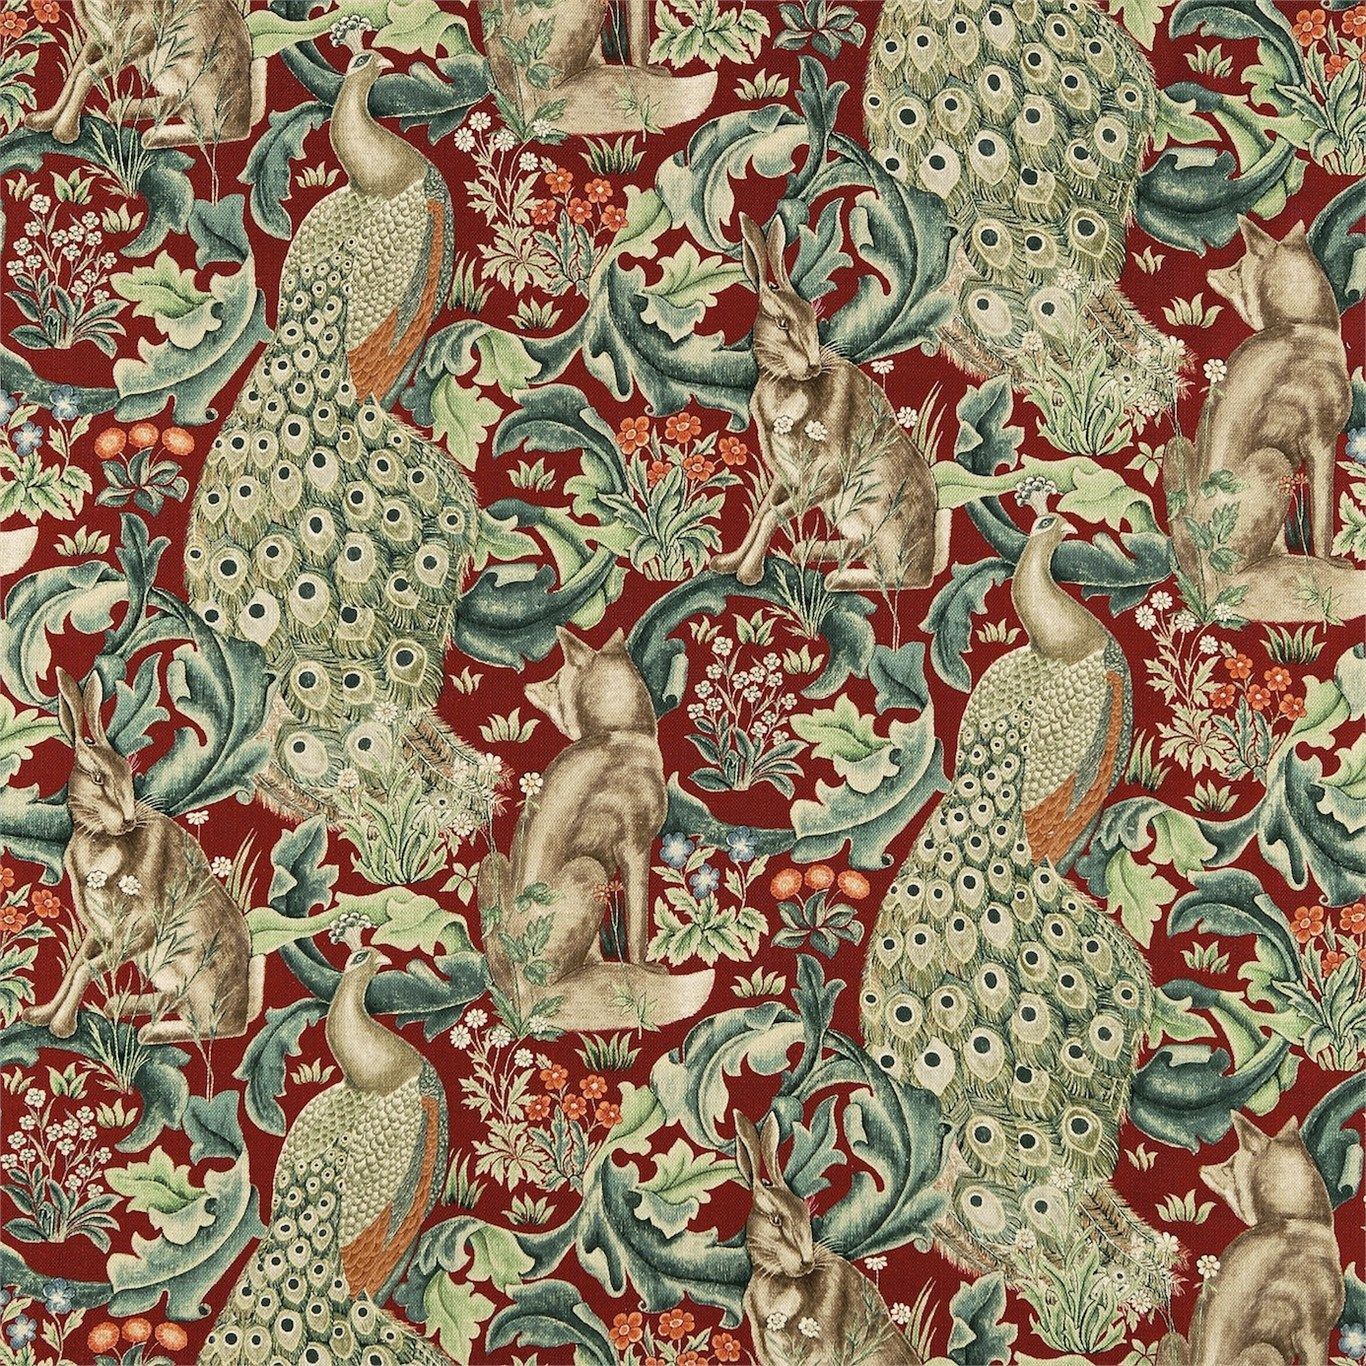 The Original Morris Co Arts And Crafts Fabrics And Wallpaper Designs By William Morris Company Products British Uk Fab Gobelanger Tyg William Morris